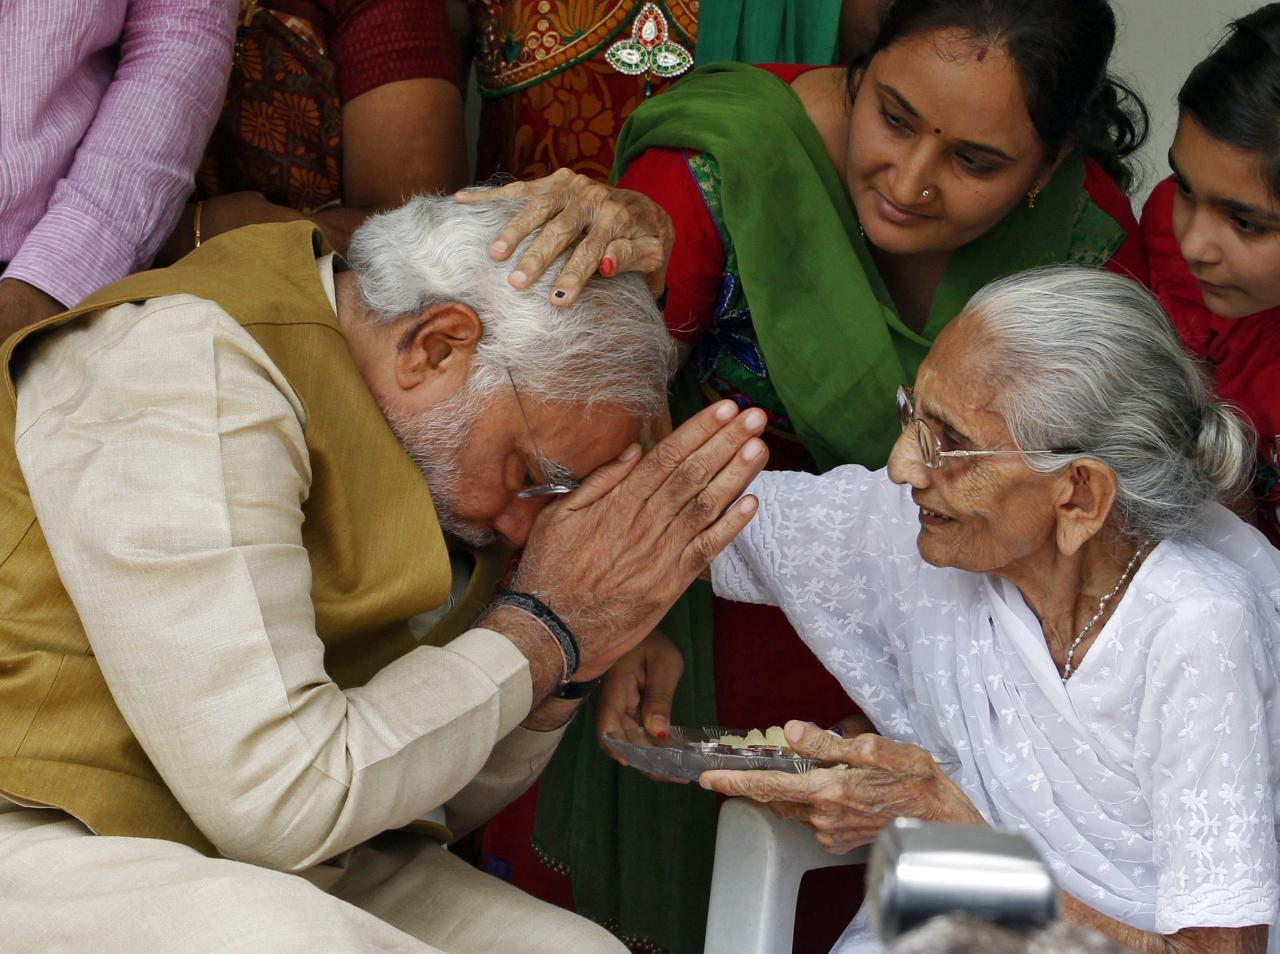 Hindu nationalist Narendra Modi (L), the prime ministerial candidate for India's main opposition Bharatiya Janata Party (BJP), seeks blessings from his mother Heeraben at her residence in Gandhinagar in the western Indian state of Gujarat May 16, 2014. Modi will be the next prime minister of India, with counting trends showing the pro-business Hindu nationalist and his party headed for the most resounding election victory the country has seen in thirty years. REUTERS/Amit Dave (INDIA - Tags: POLITICS ELECTIONS TPX IMAGES OF THE DAY)